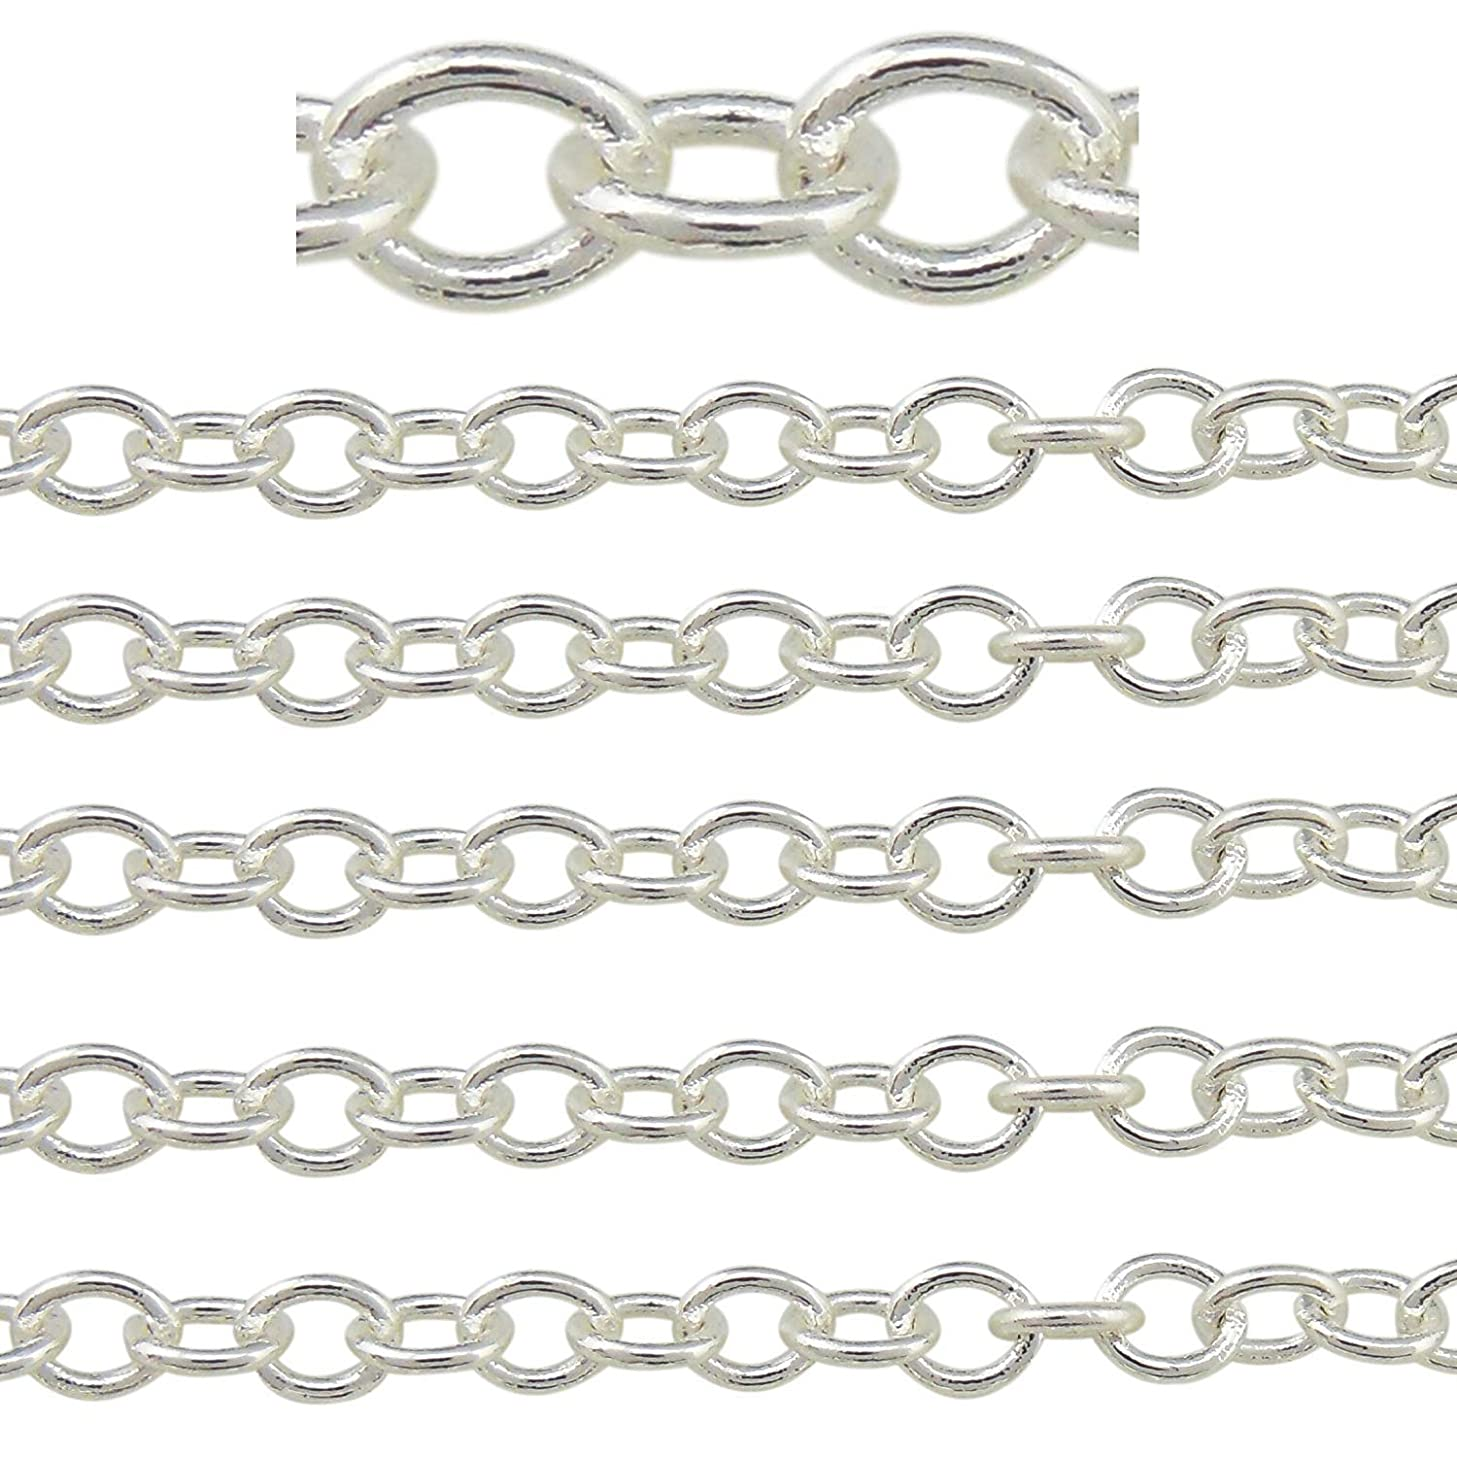 COIRIS 500'' Length 3.5MM Width Silver Color Jewelry Making Chain (PN-1023-3.5S)